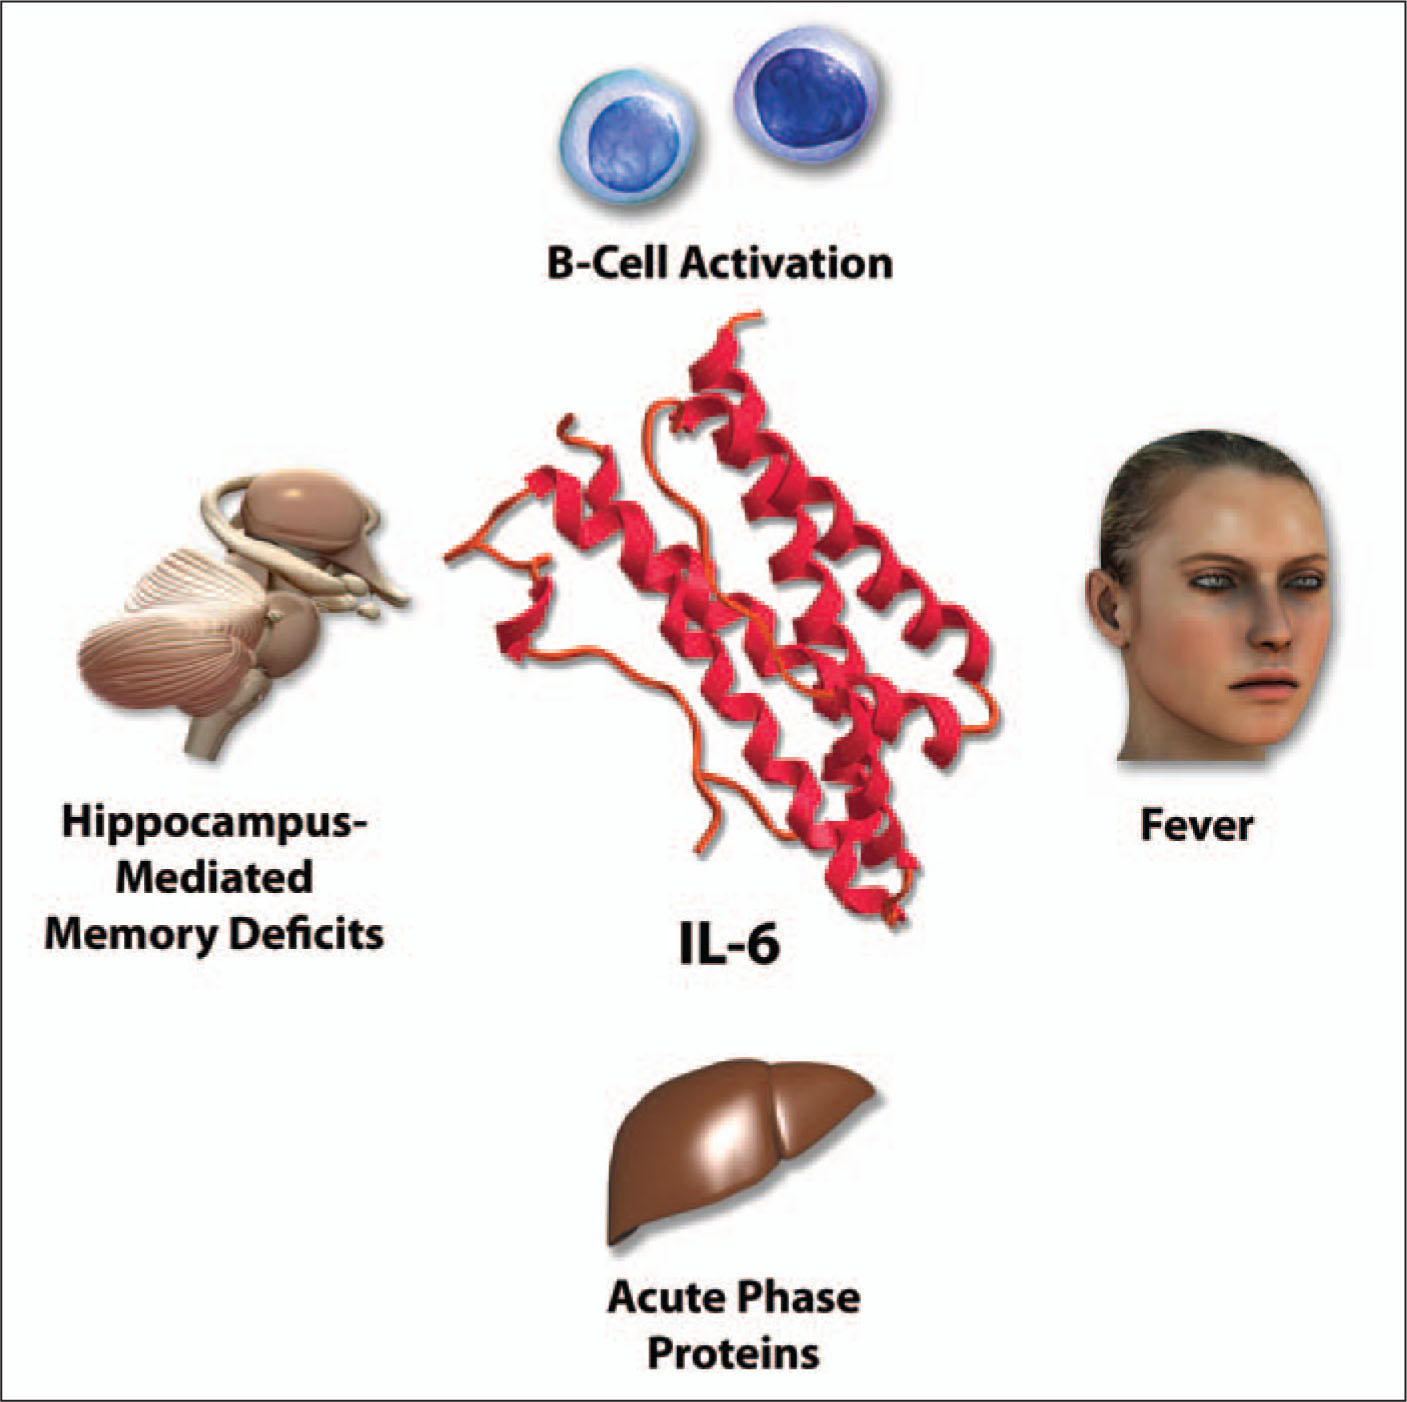 IL-6 Is Produced by a Variety of Cell Types that Have Been Activated by IL-1, TNF, or Microbial Products, Including Macrophages, Endothelial Cells, Fibroblasts, and Activated T-Cells. in Addition, IL-6 Can Be Secreted by Tumor Cells, Including Cardiac Myxomas, as Well as Bladder and Cervical Cancers. IL-6 Is Pyrogenic. It Induces the Production of Acute-Phase Proteins by Hepatocytes and Stimulates the Growth of Differentiated, Antibody-Producing B-Cells. IL-6 Amplifies the Sickness Reaction to Other Cytokines and Can Induce Hippocampus-Mediated Memory Deficits. A Note from the Editors: All Illustrations in This Article Have Been Created by George I. Viamontes, MD, PhD, for Specific Use in This Issue of Psychiatric Annals.